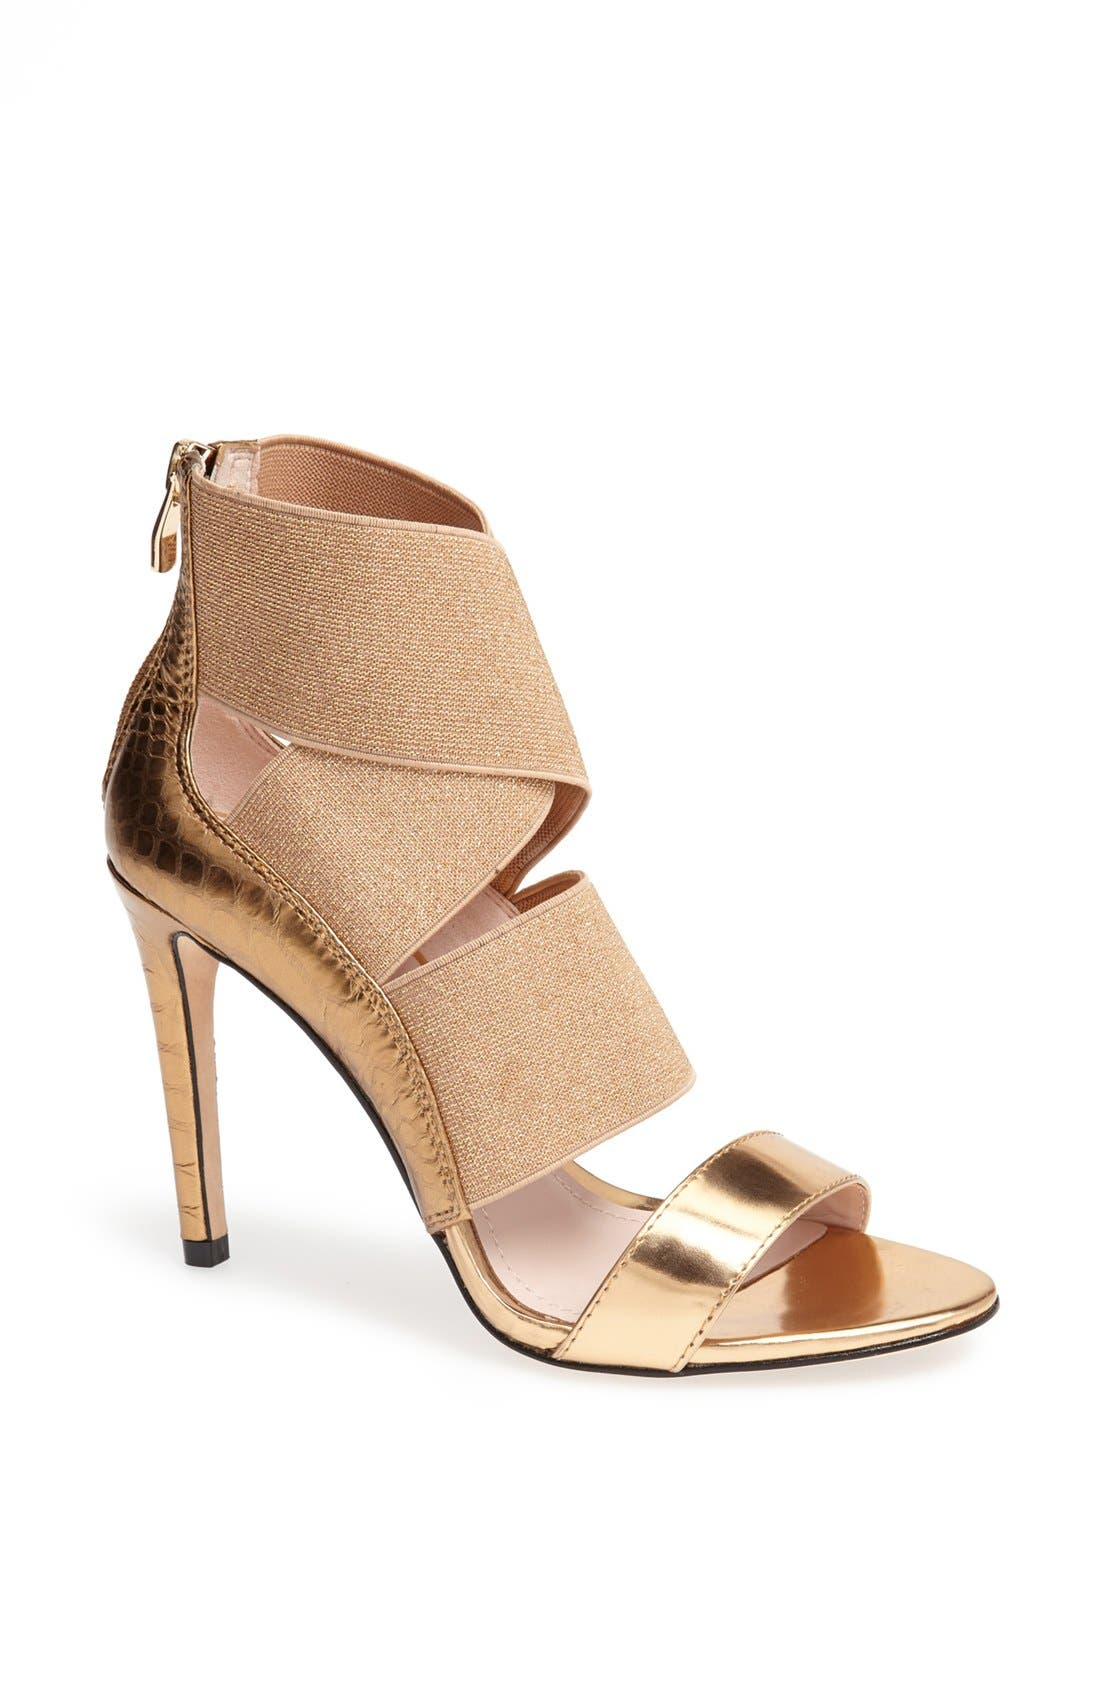 Main Image - Vince Camuto 'Ondetti' Sandal